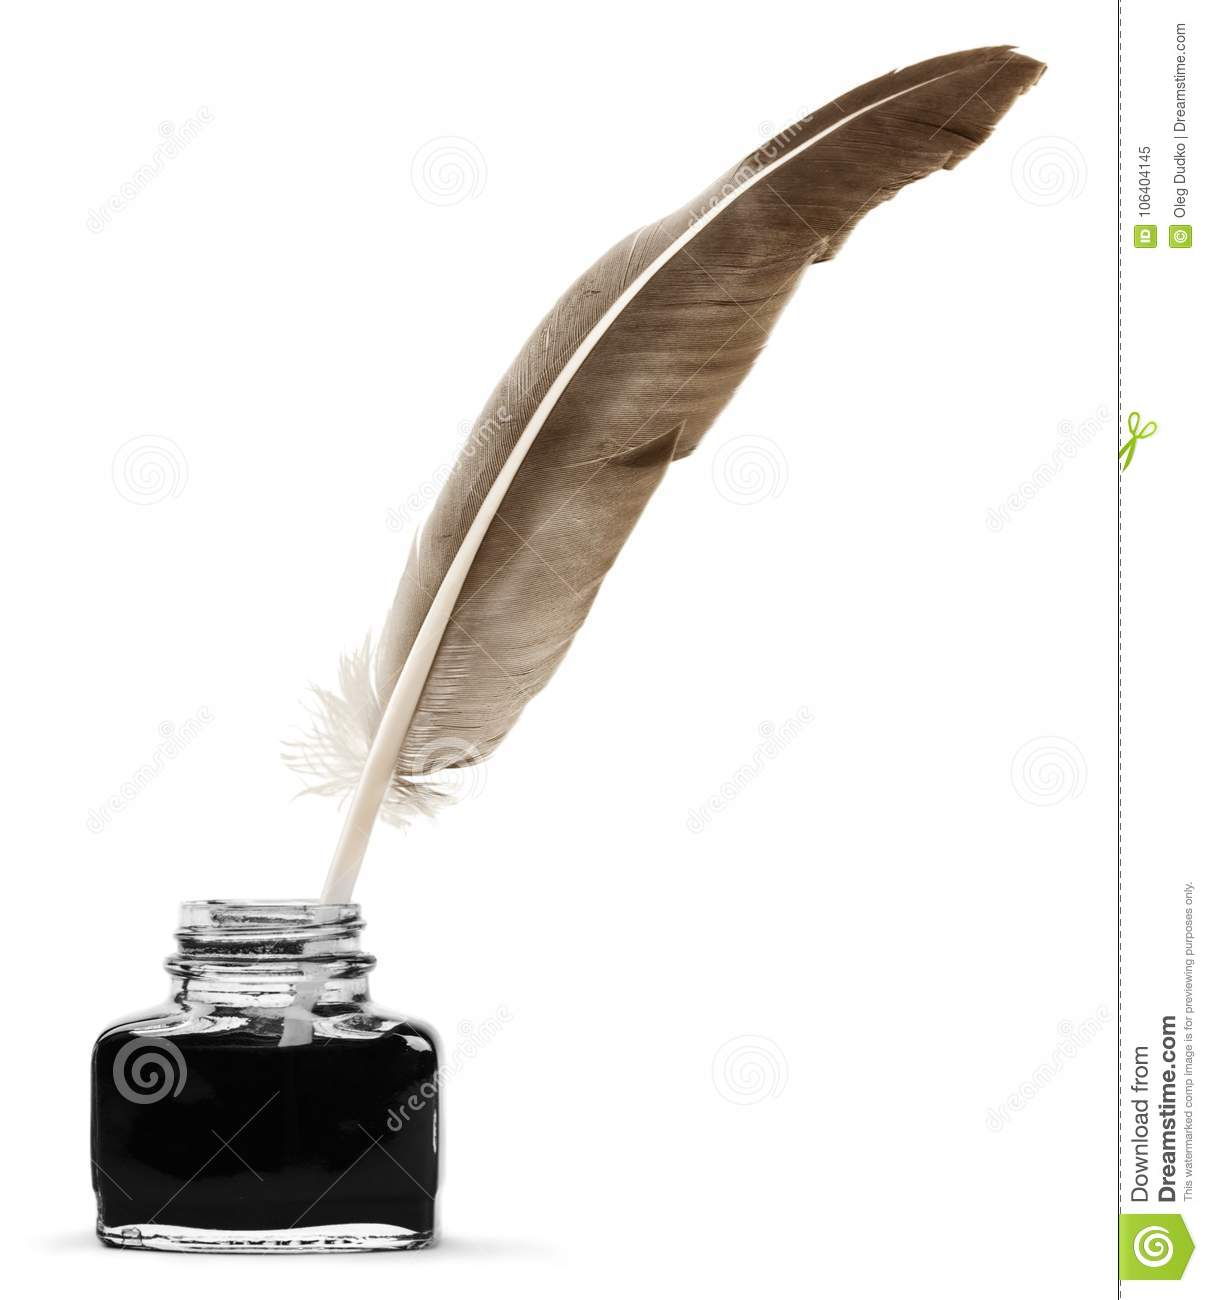 Feather Quill Pen And Glass Inkwell Isolated On A Stock ...Quill And Inkwell Image